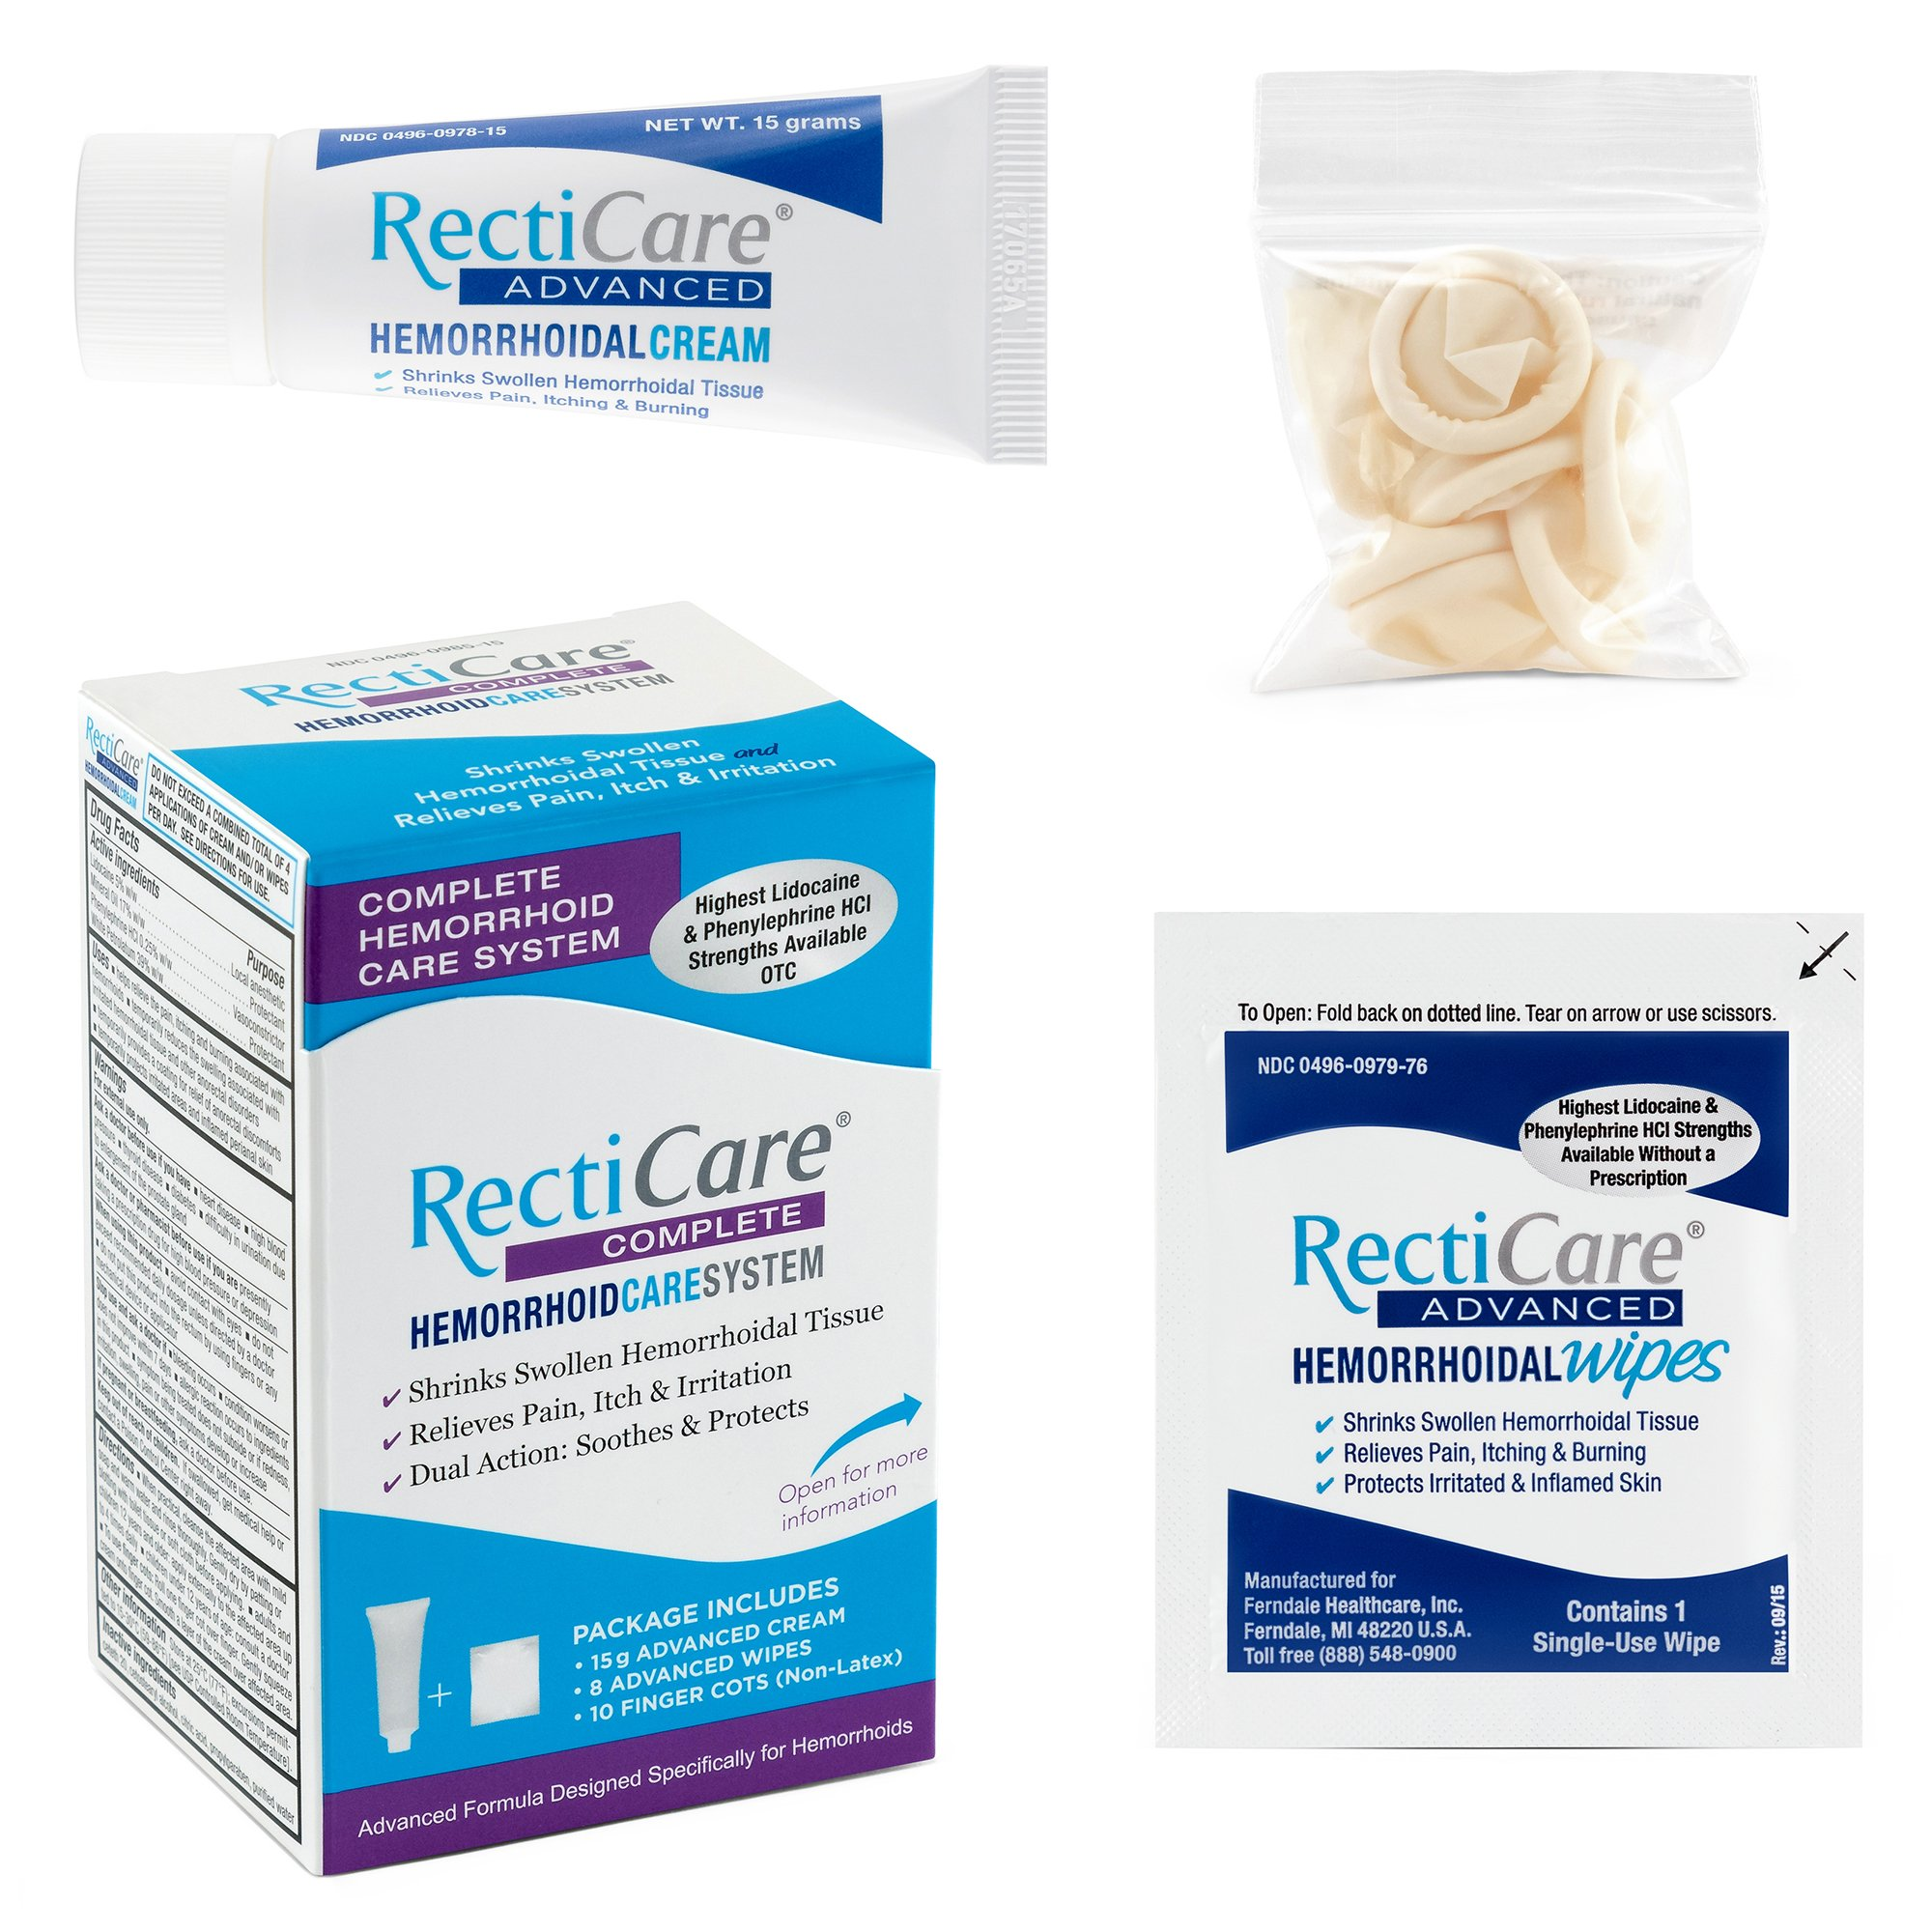 RectiCare Complete Hemorrhoid Care System: Advanced Treatment to Shrink & Soothe Hemorrhoids